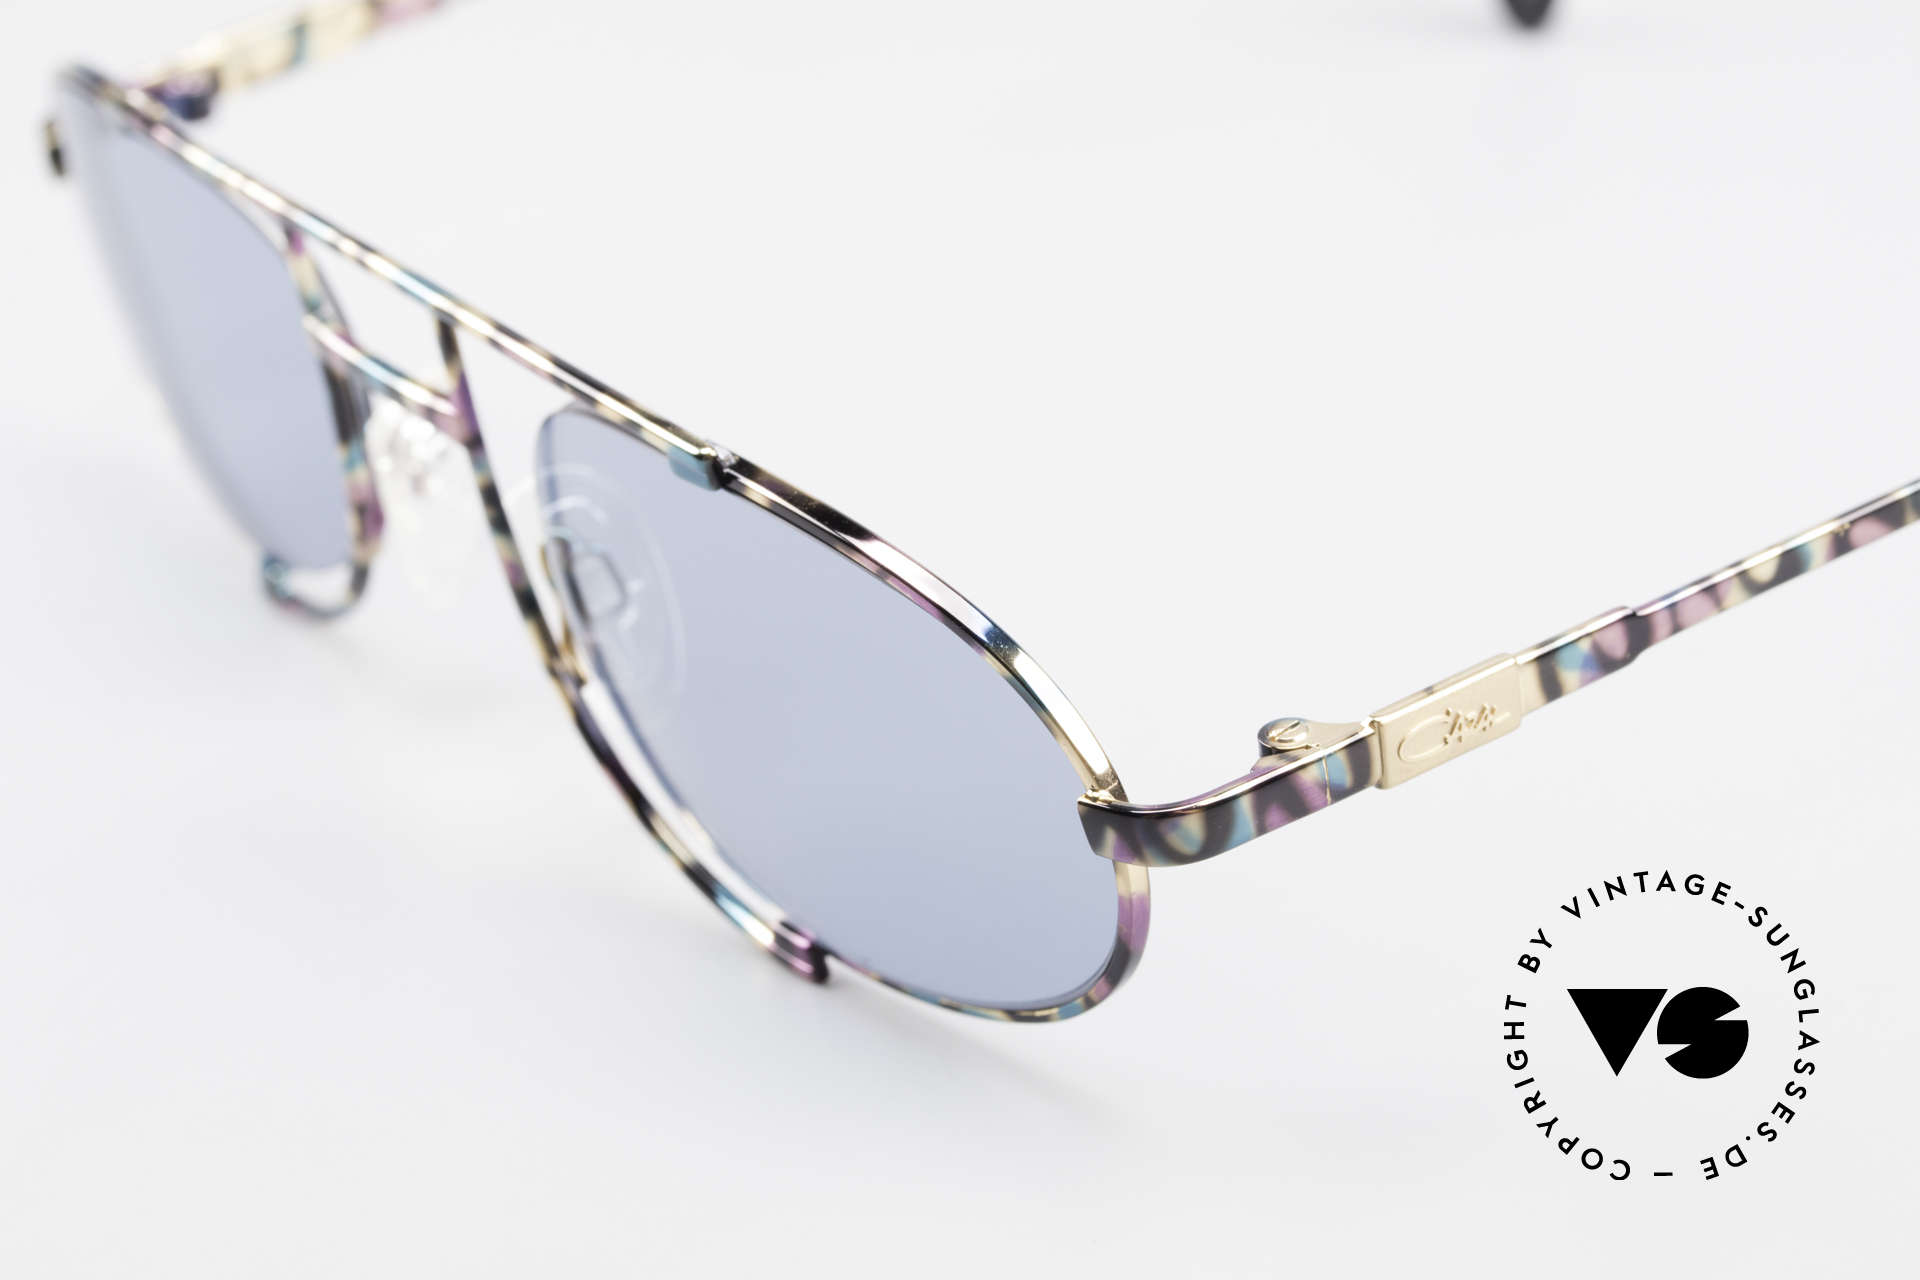 Cazal 753 Oval 90's Designer Sunglasses, high-grade craftsmanship: frame made in Germany, Made for Men